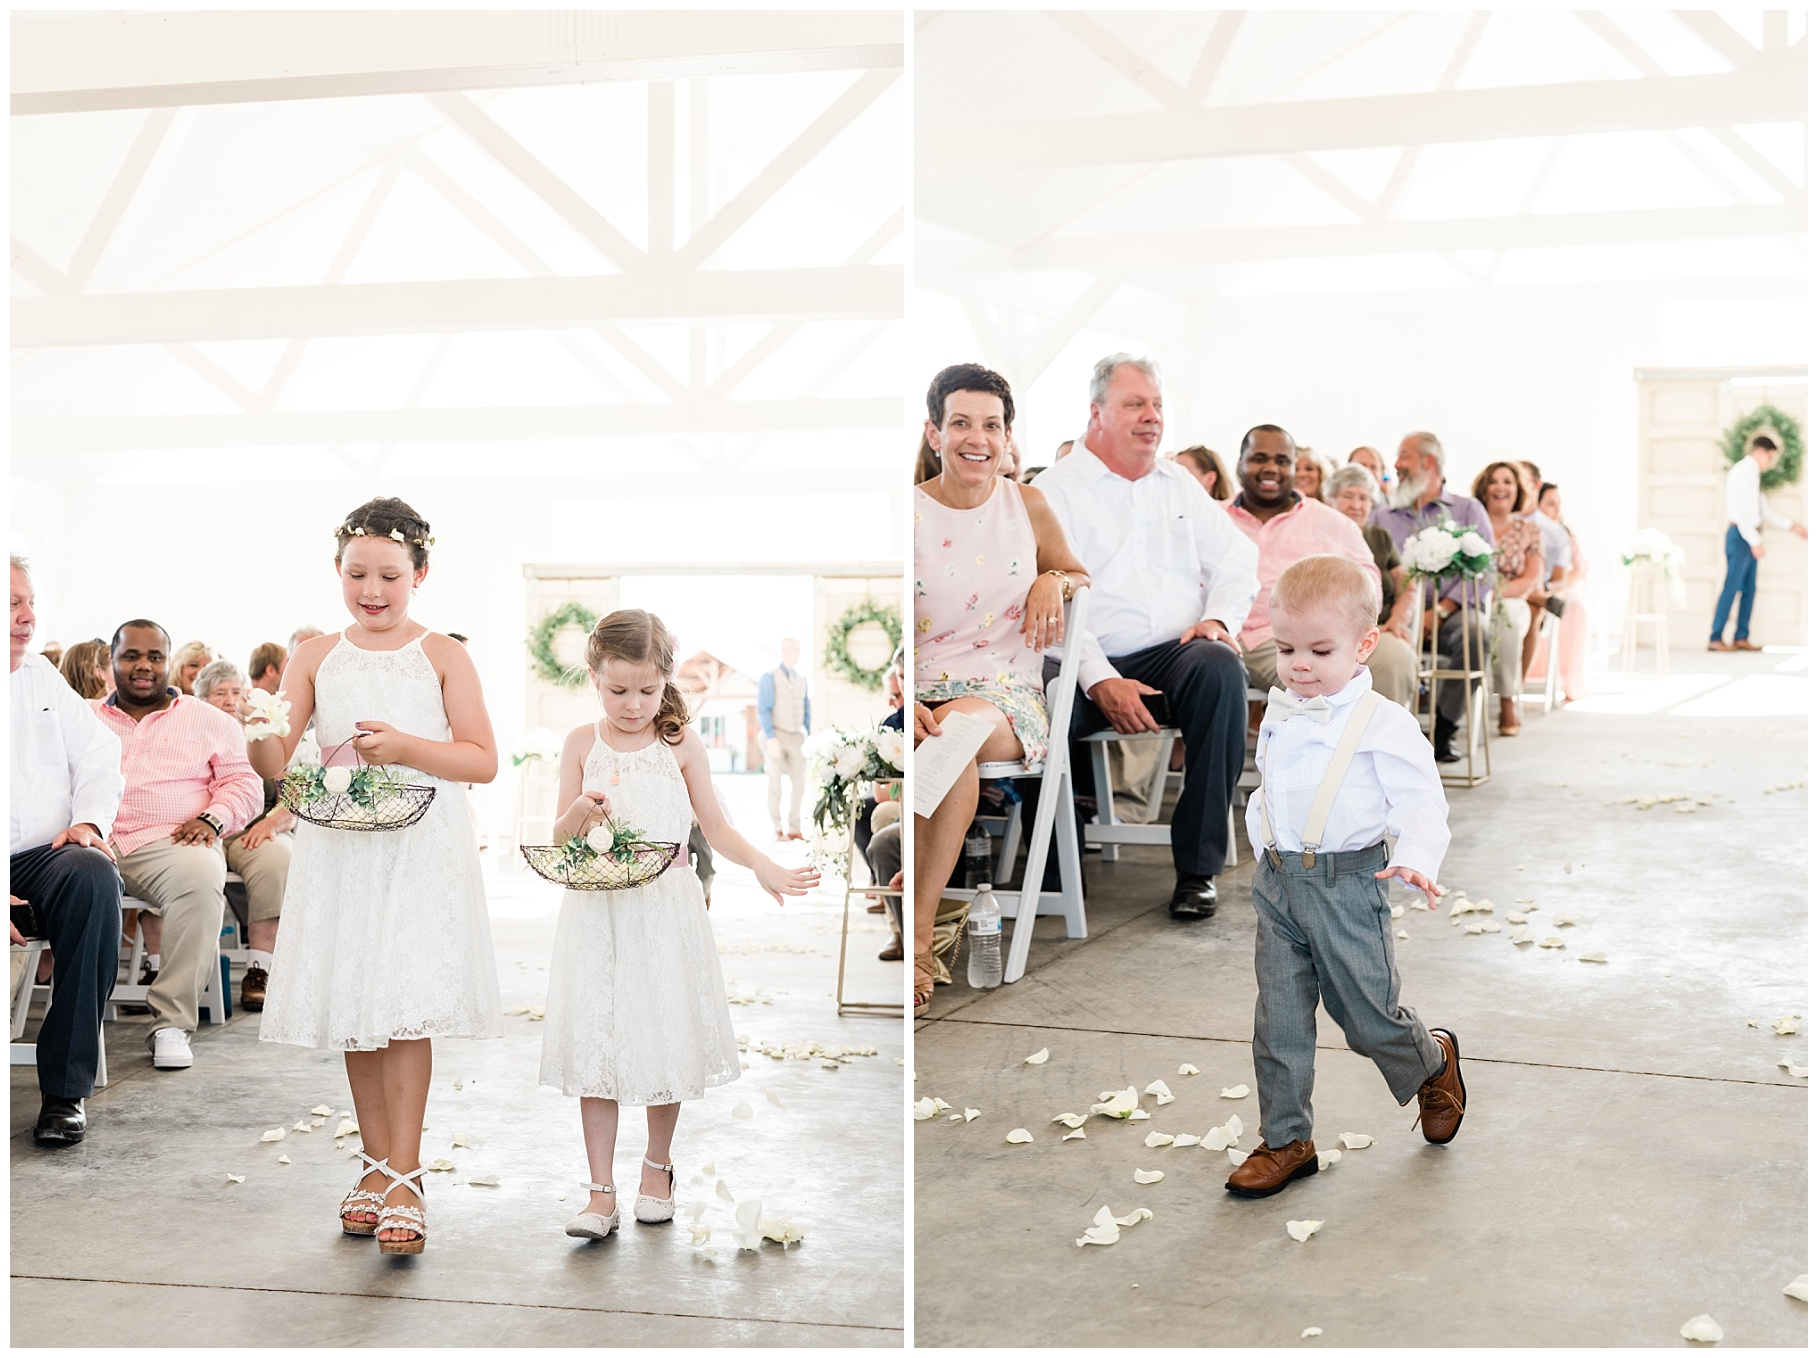 Classic Quartz, White, and Deep Green Wedding at Emerson Fields by Kelsi Kliethermes Photography Best Columbia Missouri and Maui Hawaii Wedding Photographer_0050.jpg